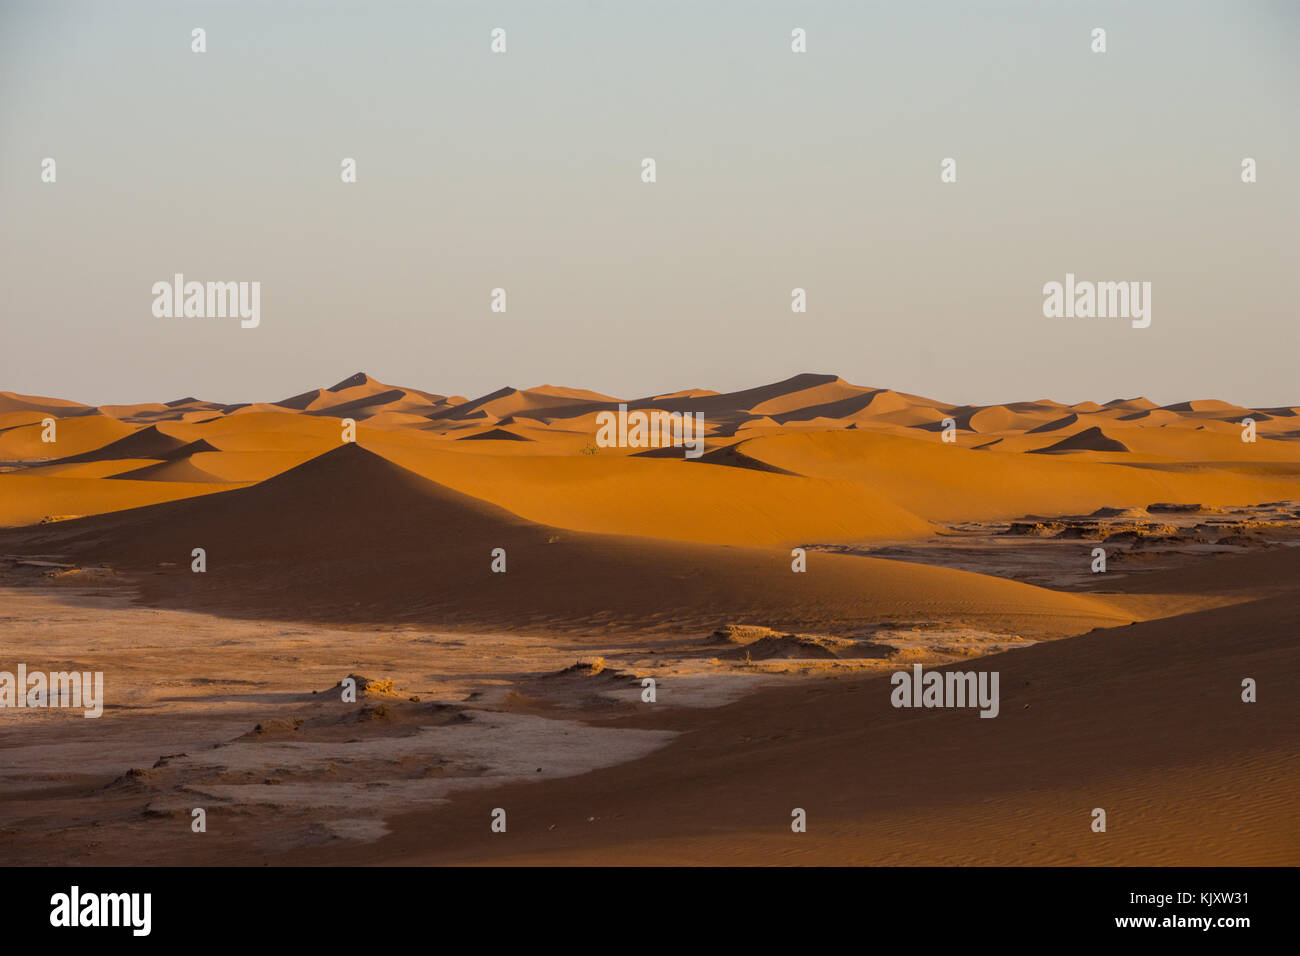 Sahara is the largest desert in the world - Stock Image